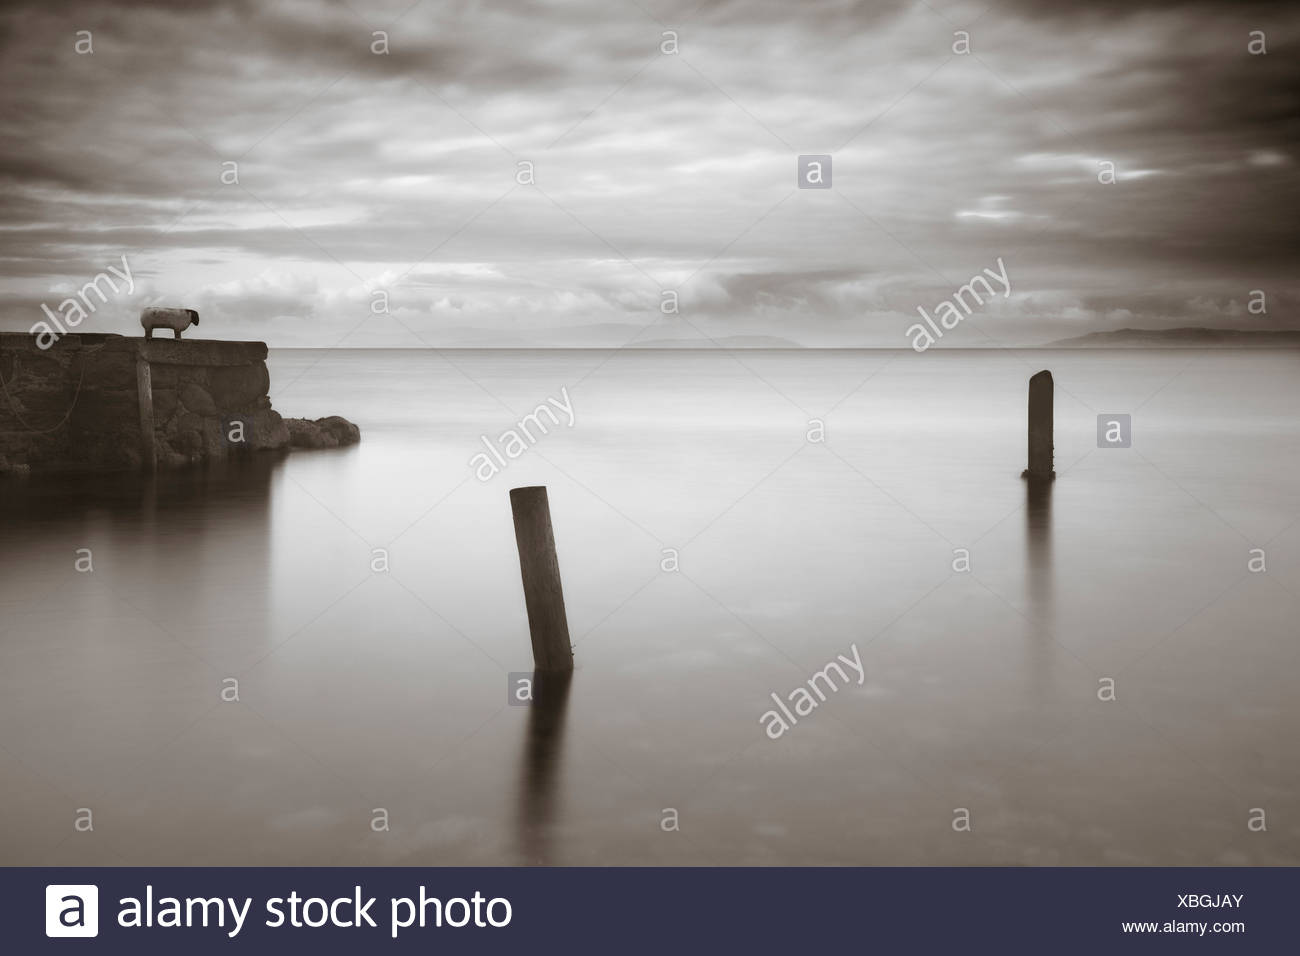 A calm sea with mooring timber and a sheep on headland - Stock Image